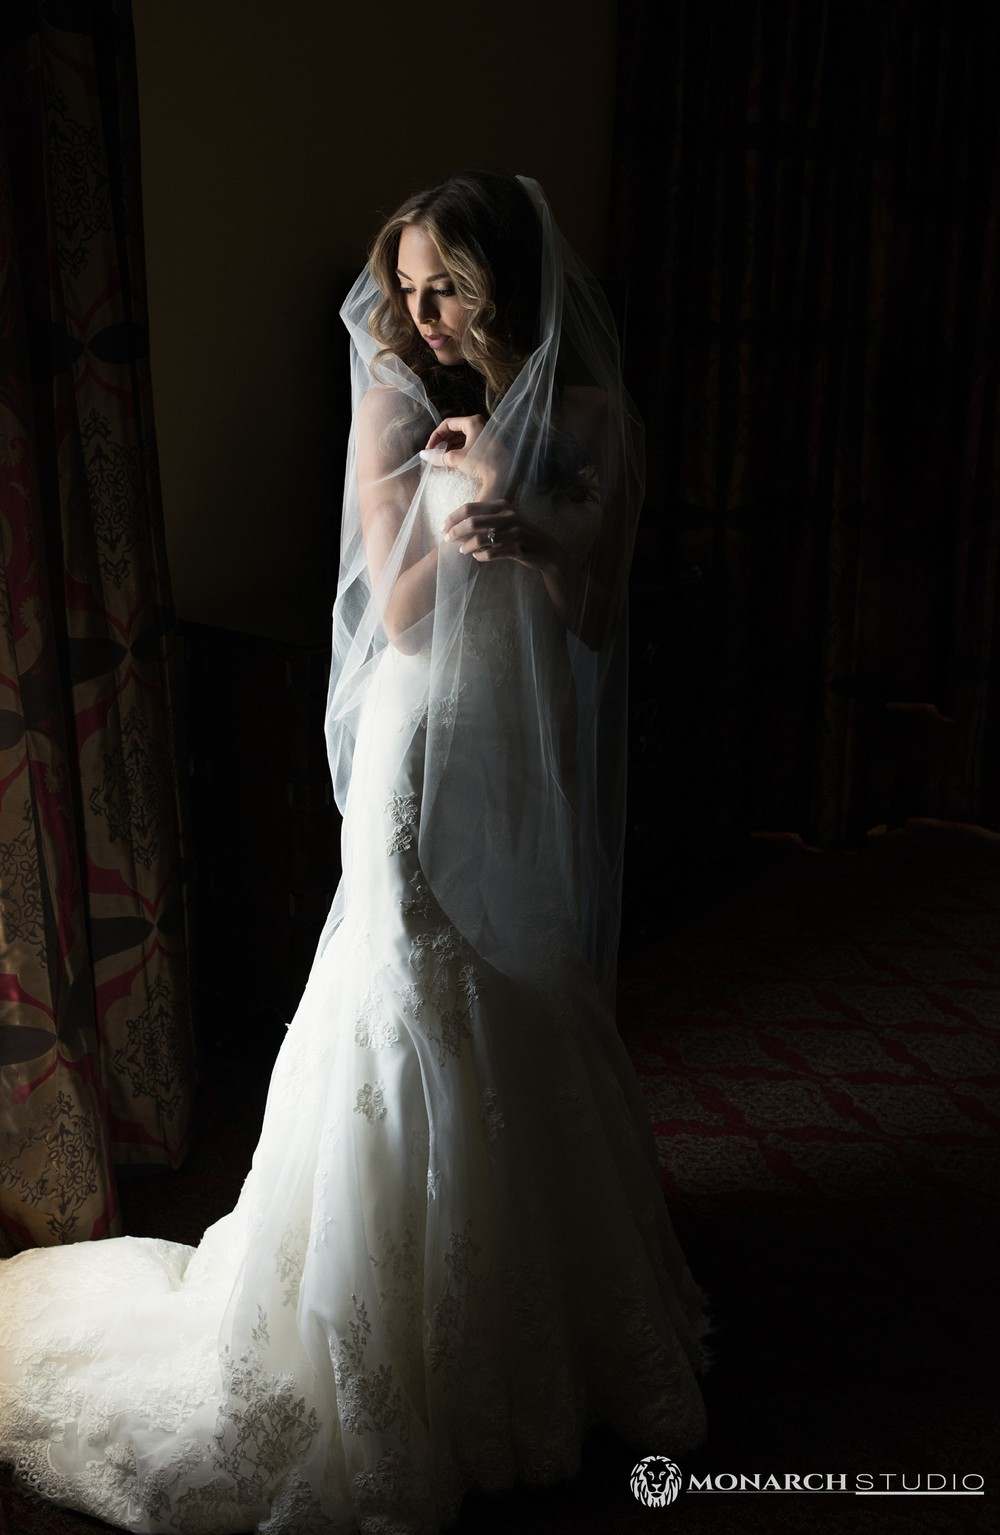 St. Augustine Wedding portrait of a bride at the Casa Monica Hotel.